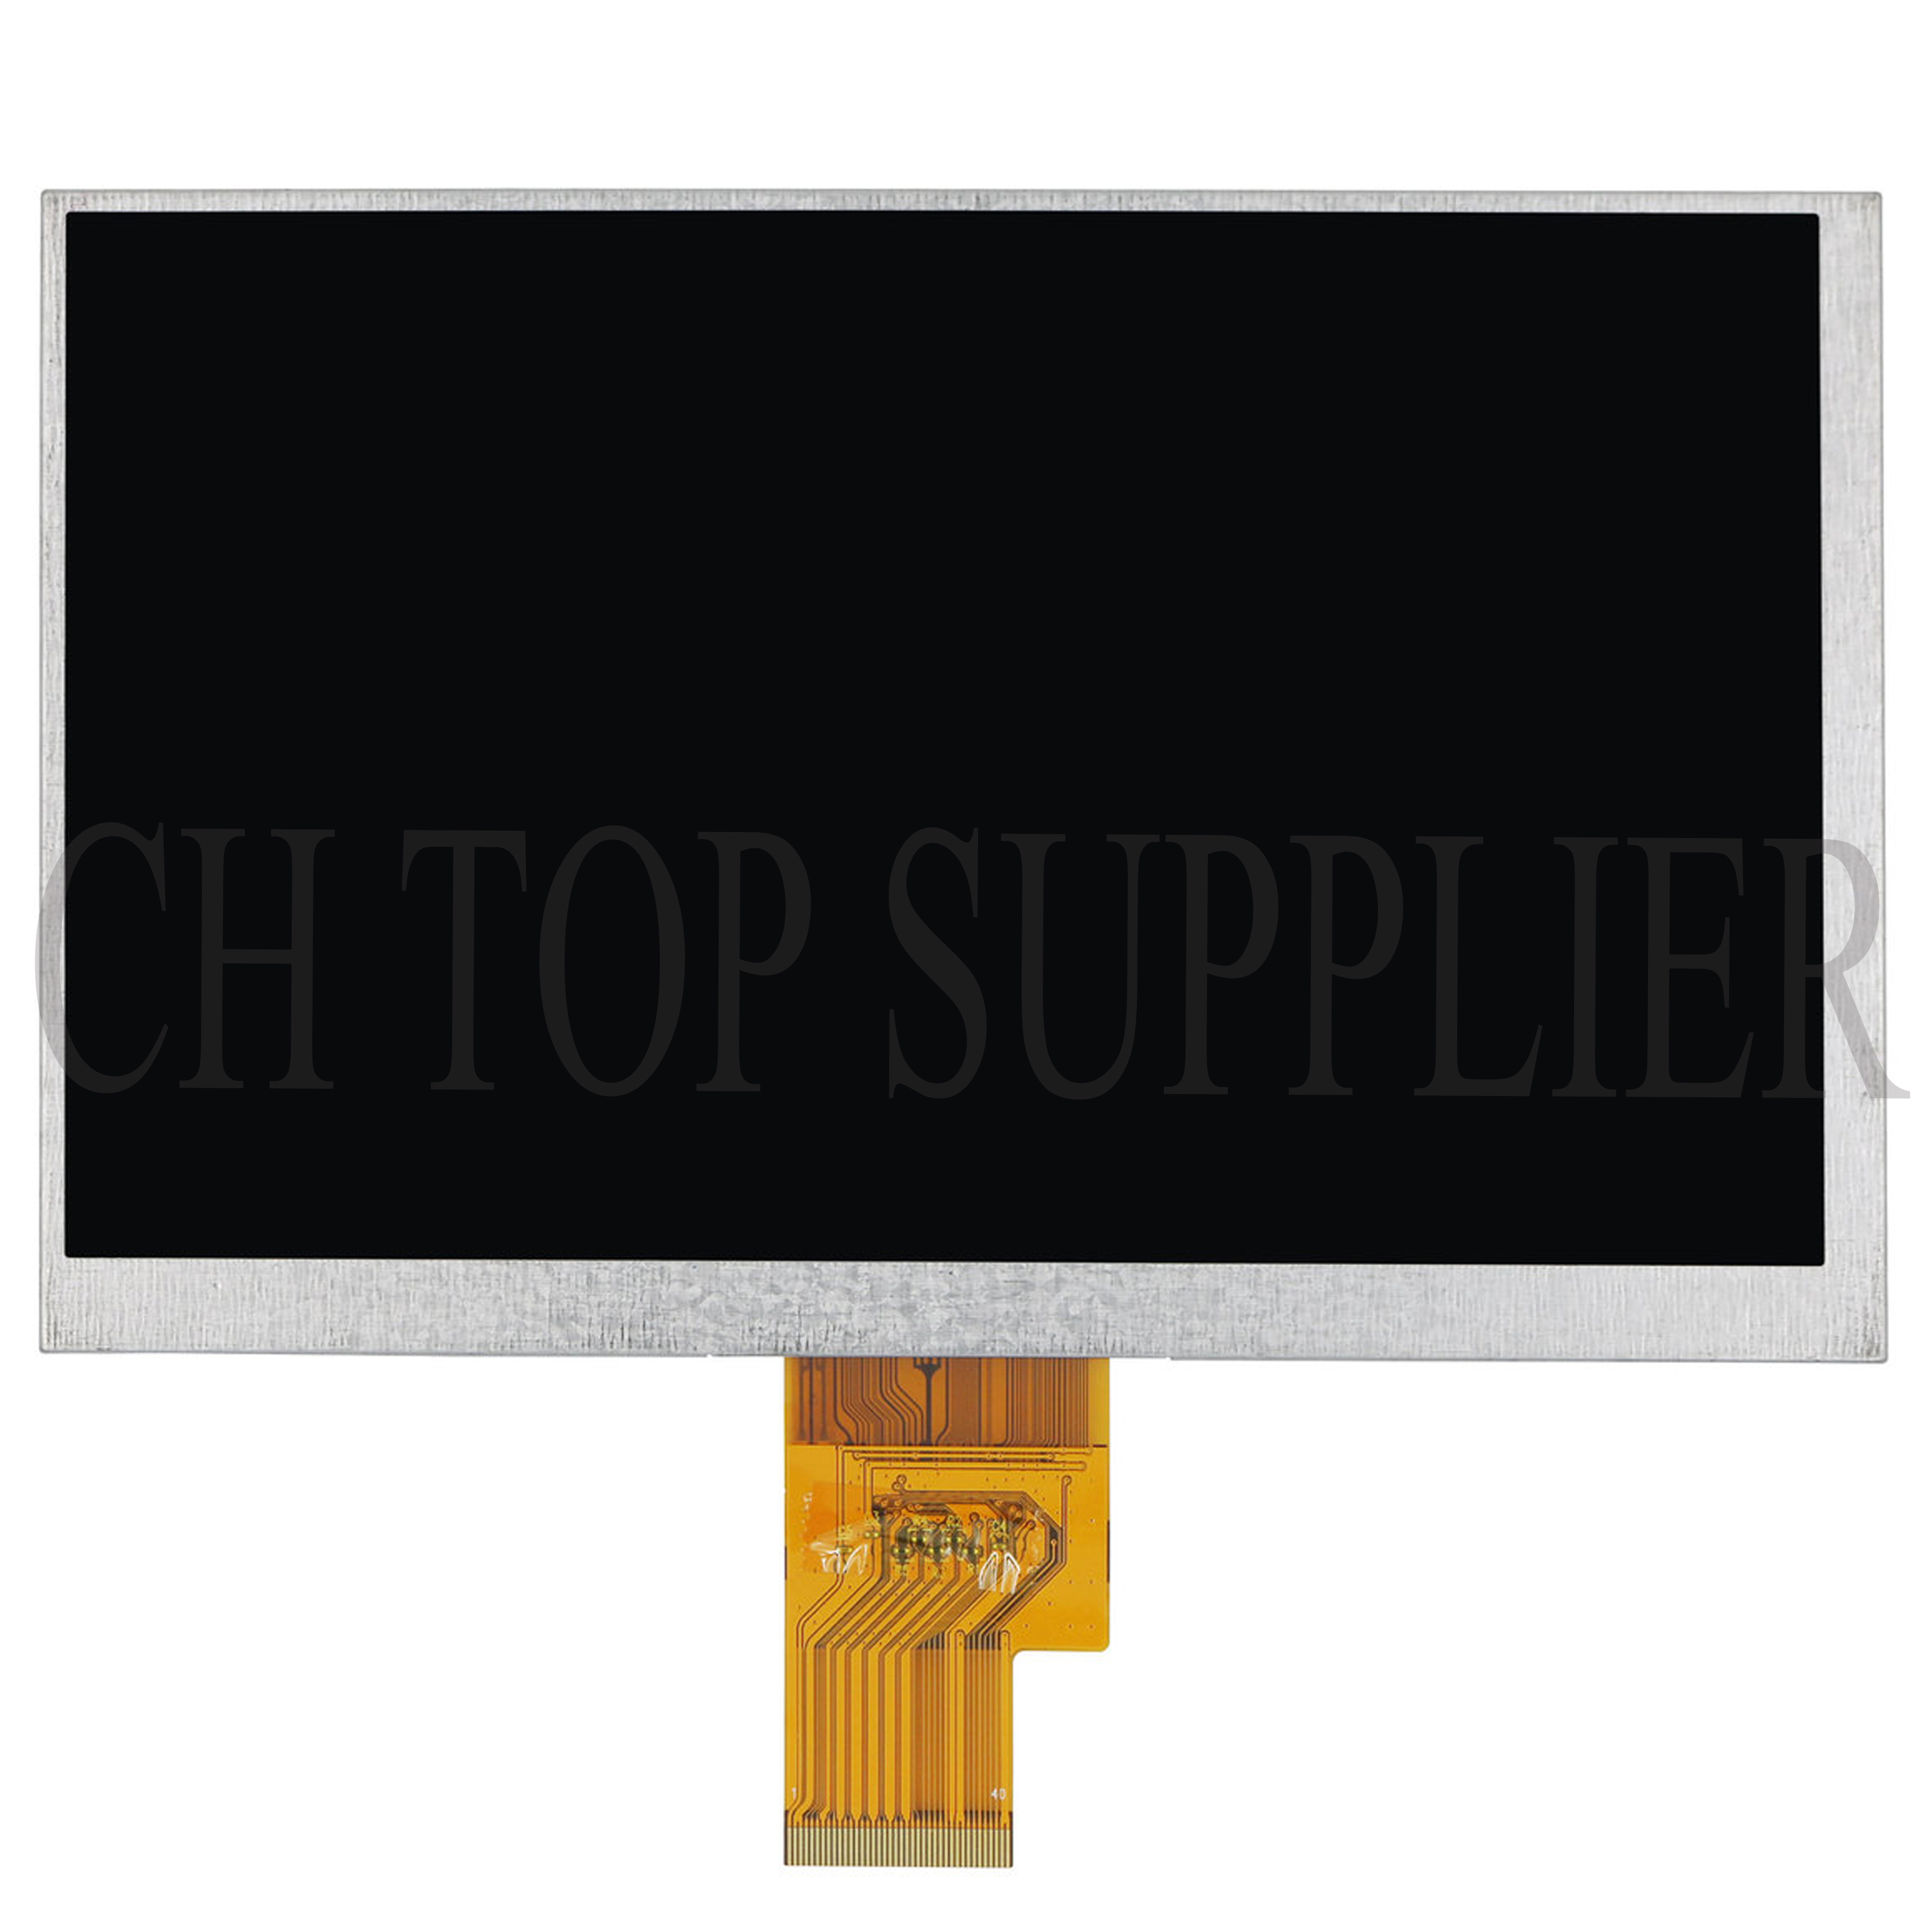 7 HD TFT LCD Display LCD Screen for MID Ramos W17 Pro 1024*600 LVDS Signal AT070TNA2 V.1 Manager recommend 100%new & original рюкзак case logic 17 3 prevailer black prev217blk mid